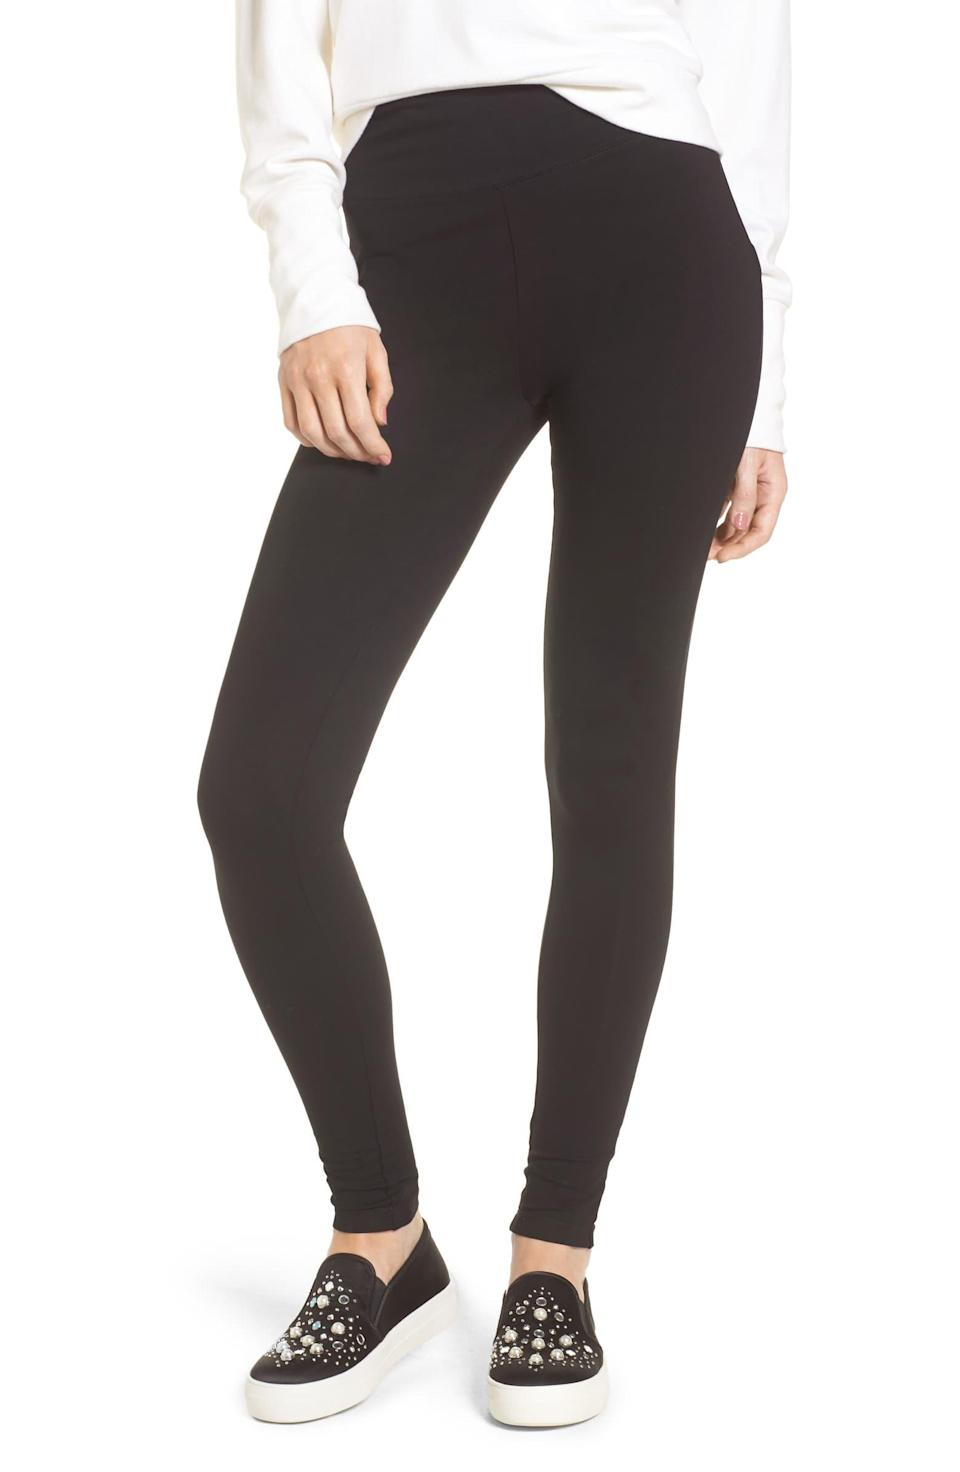 "I don't wear leggings a lot, but I love my trusted pair from Nordstrom that I bought years ago. They have lasted through hundreds of washes and aren't see-through. They're the best and aren't expensive either. —<em>Khaliha Hawkins, producer</em> $19, Nordstrom. <a href=""https://shop.nordstrom.com/s/bp-high-rise-leggings/4687341?origin=keywordsearch-personalizedsort&breadcrumb=Home%2FAll%20Results&color=black"" rel=""nofollow noopener"" target=""_blank"" data-ylk=""slk:Get it now!"" class=""link rapid-noclick-resp"">Get it now!</a>"